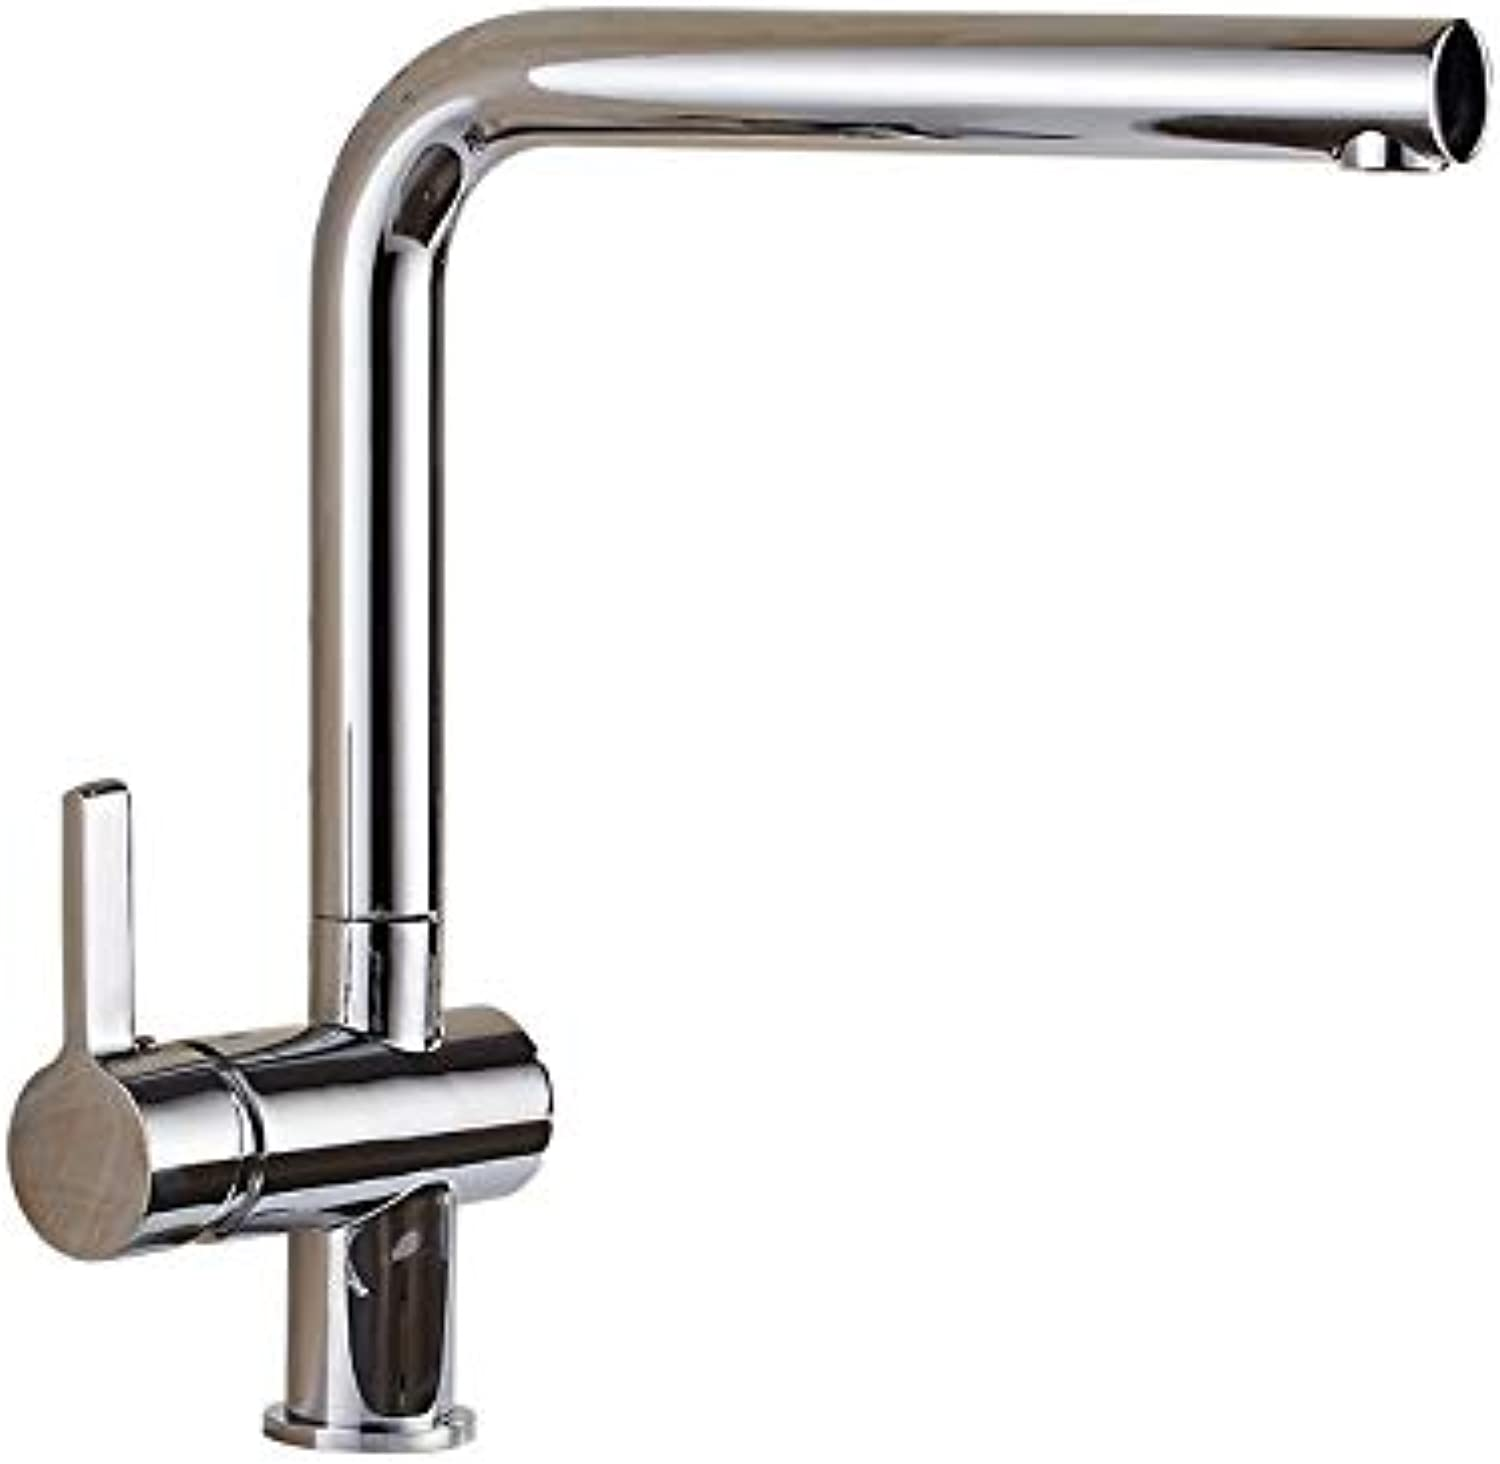 Decorry Kitchen Faucet Chrome Brass Kitchen Faucet Single Handle Single Hole Kitchen Sink Mixer Tap Hot Cold Deck Mounted Crane Torneira